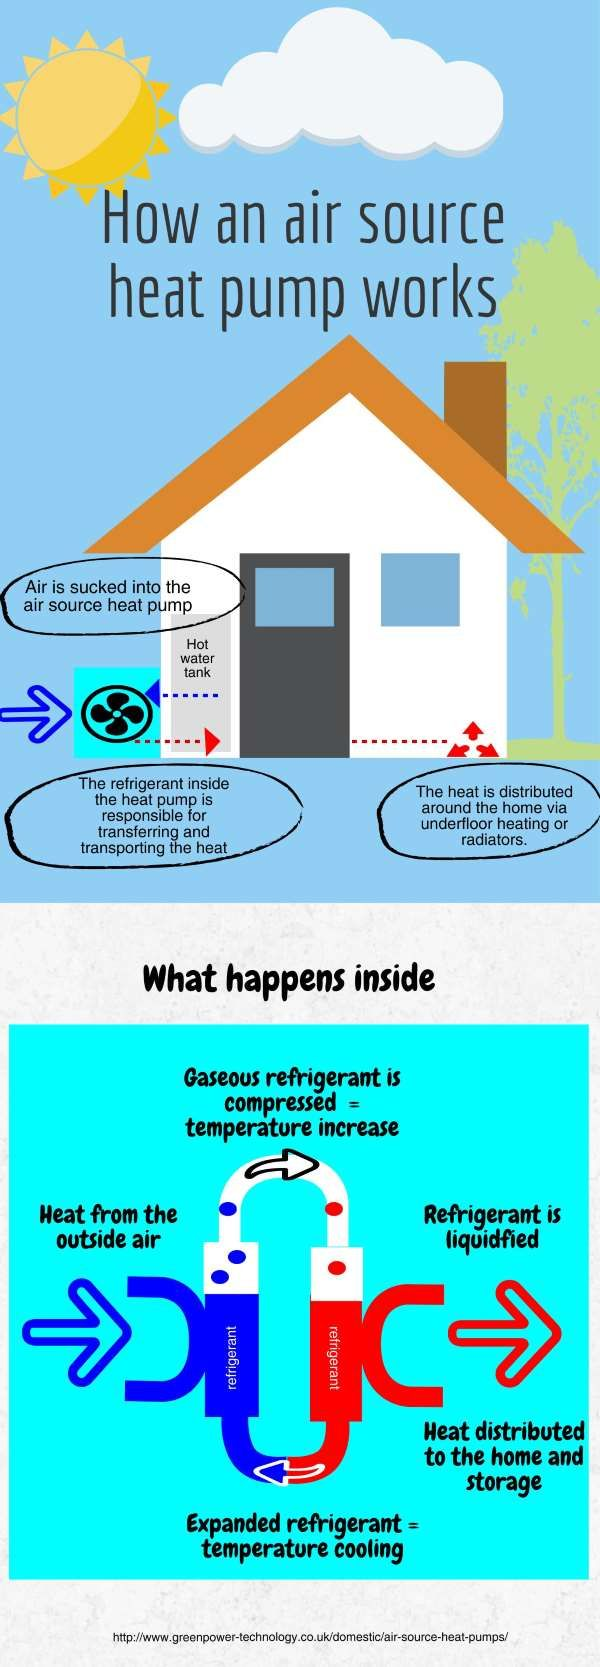 21 best images about heat pumps: all you need to know on pinterest